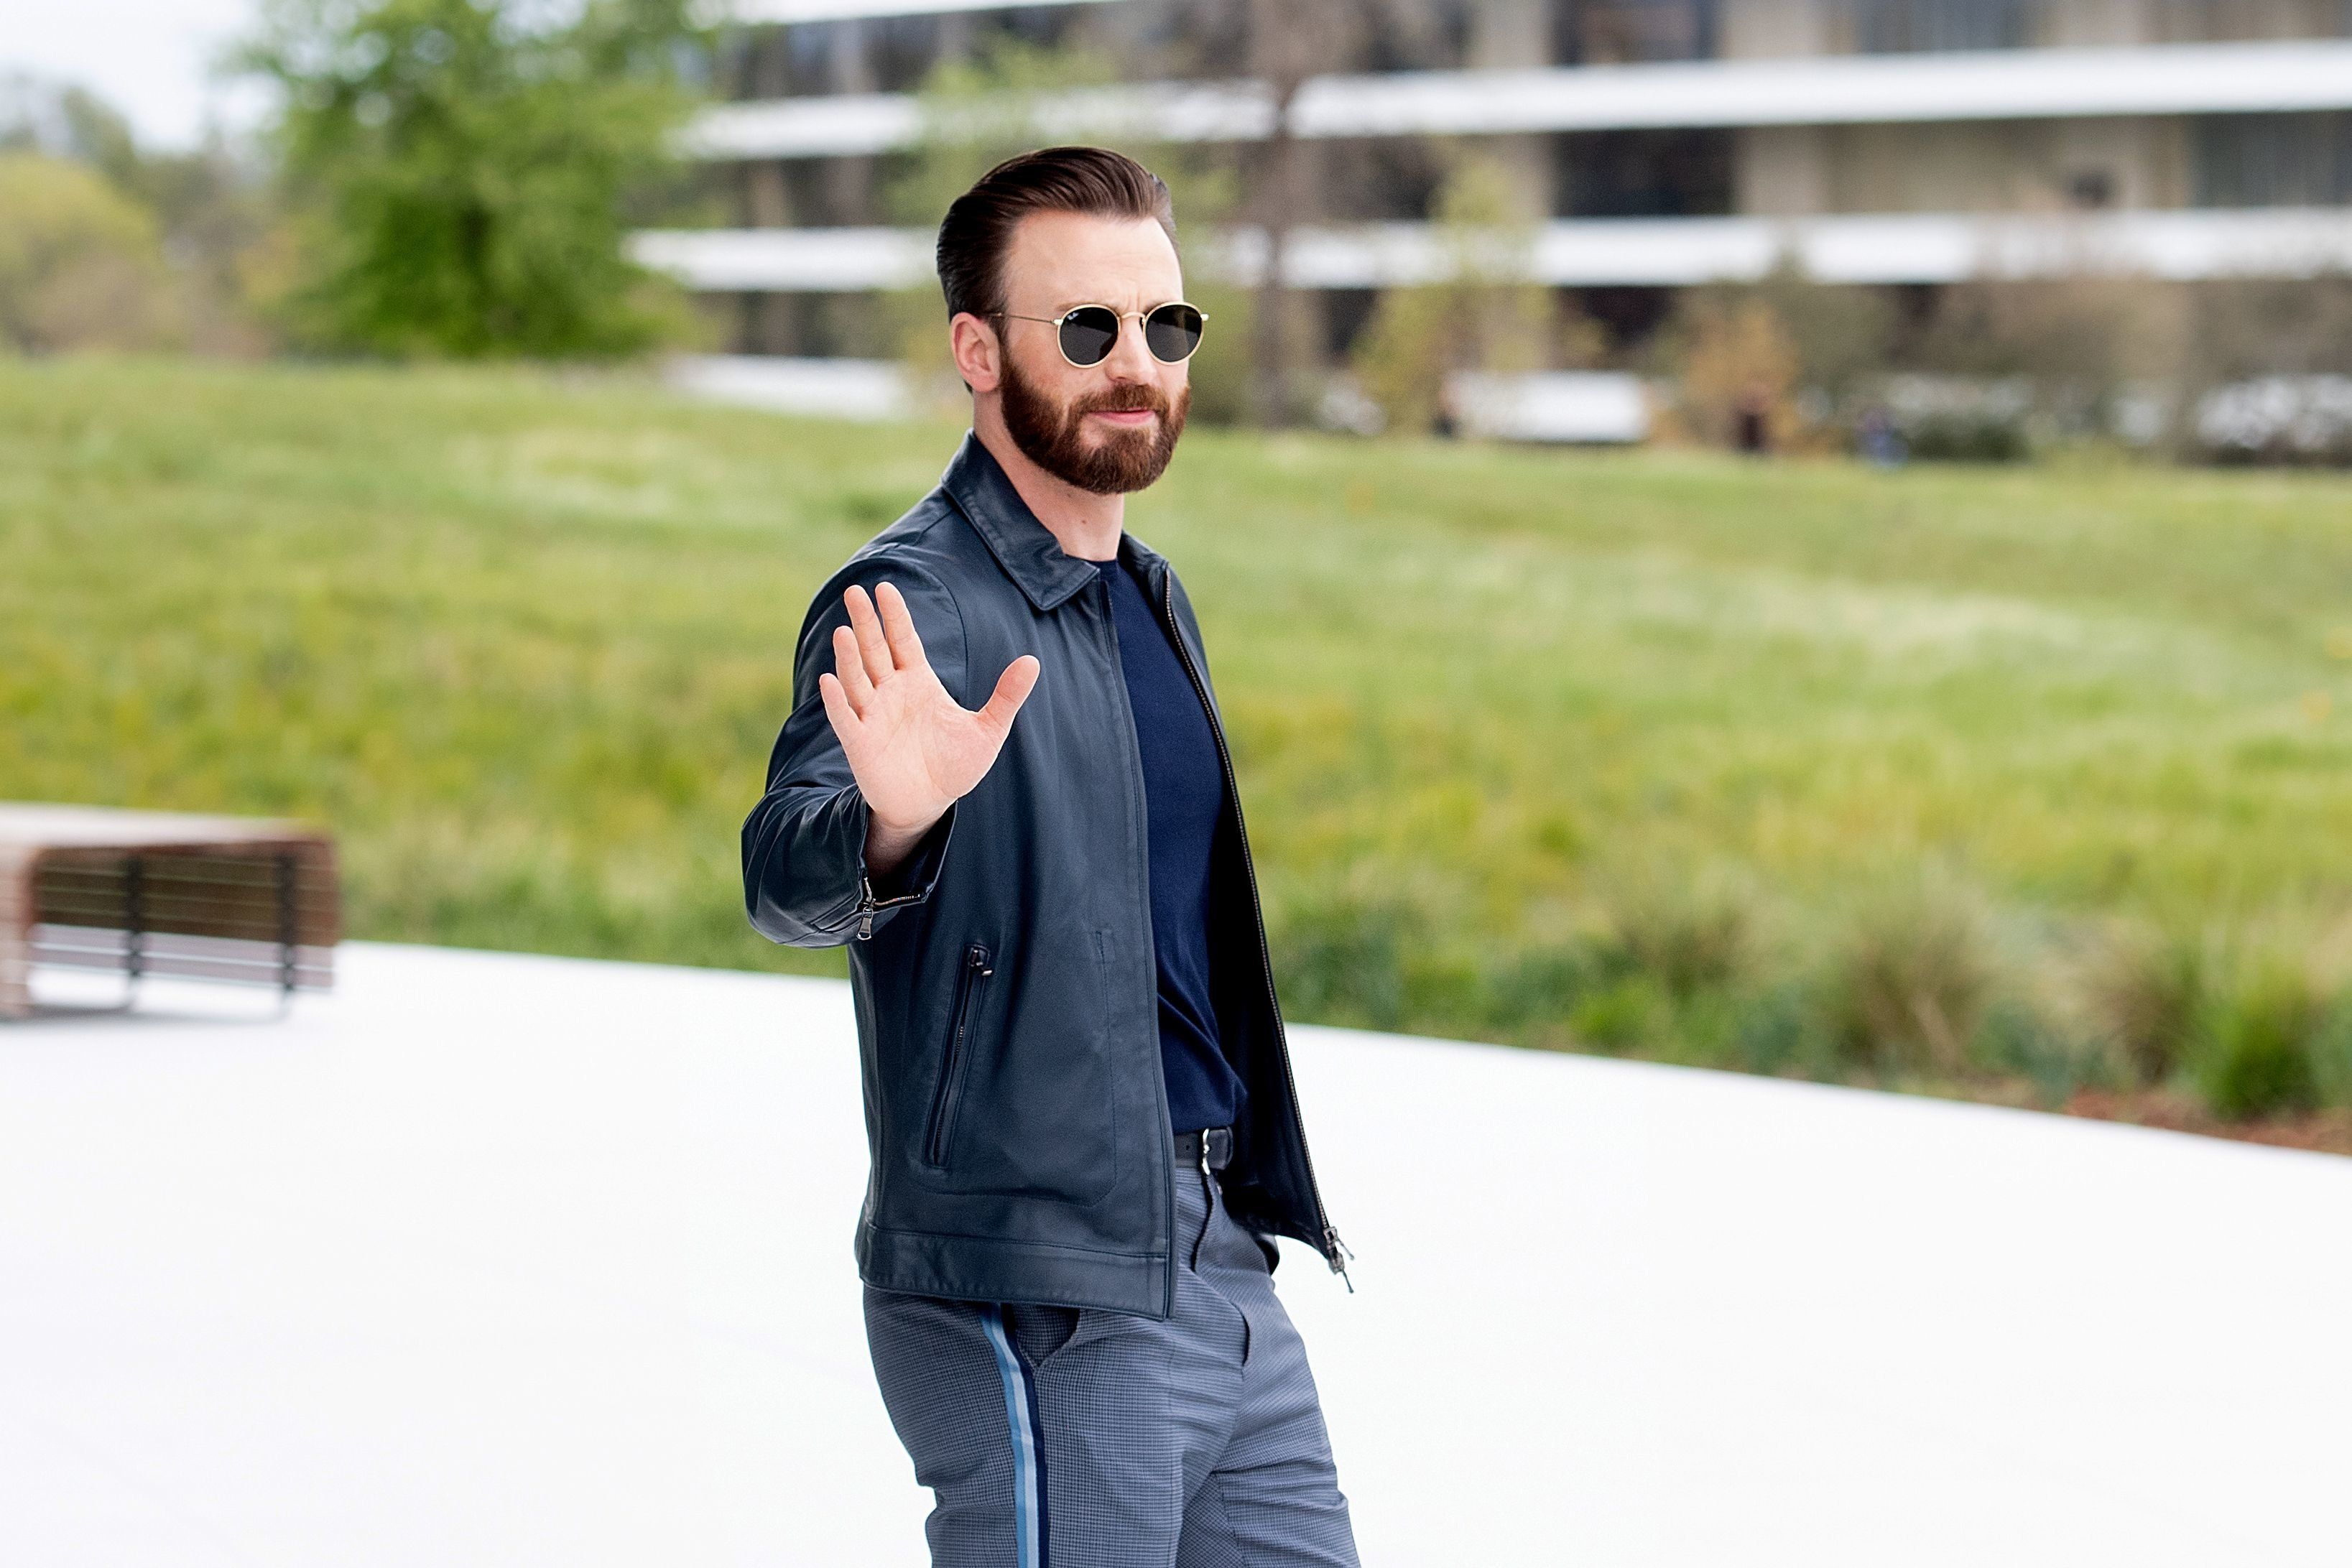 Actor Chris Evans leaves an event launching Apple tv+ at Apple headquarters on March 25, 2019, in Cupertino, California. (Photo by NOAH BERGER / AFP)        (Photo credit should read NOAH BERGER/AFP/Getty Images)